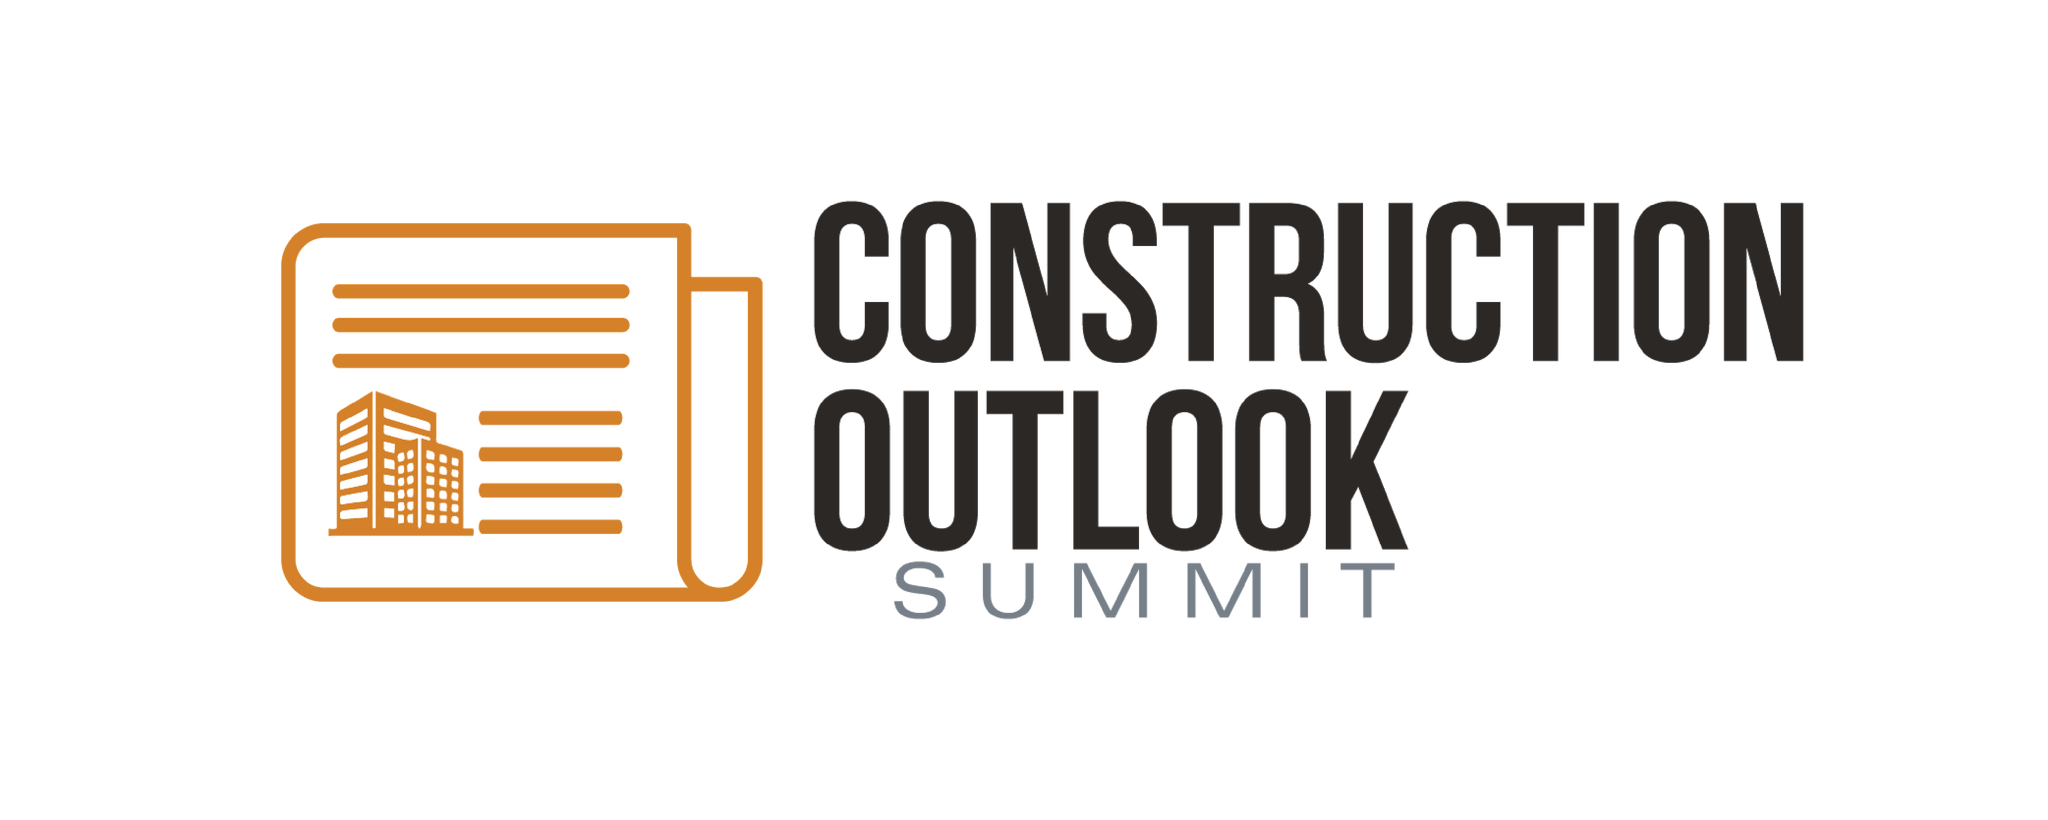 CONSTRUCTION OUTLOOK SUMMIT